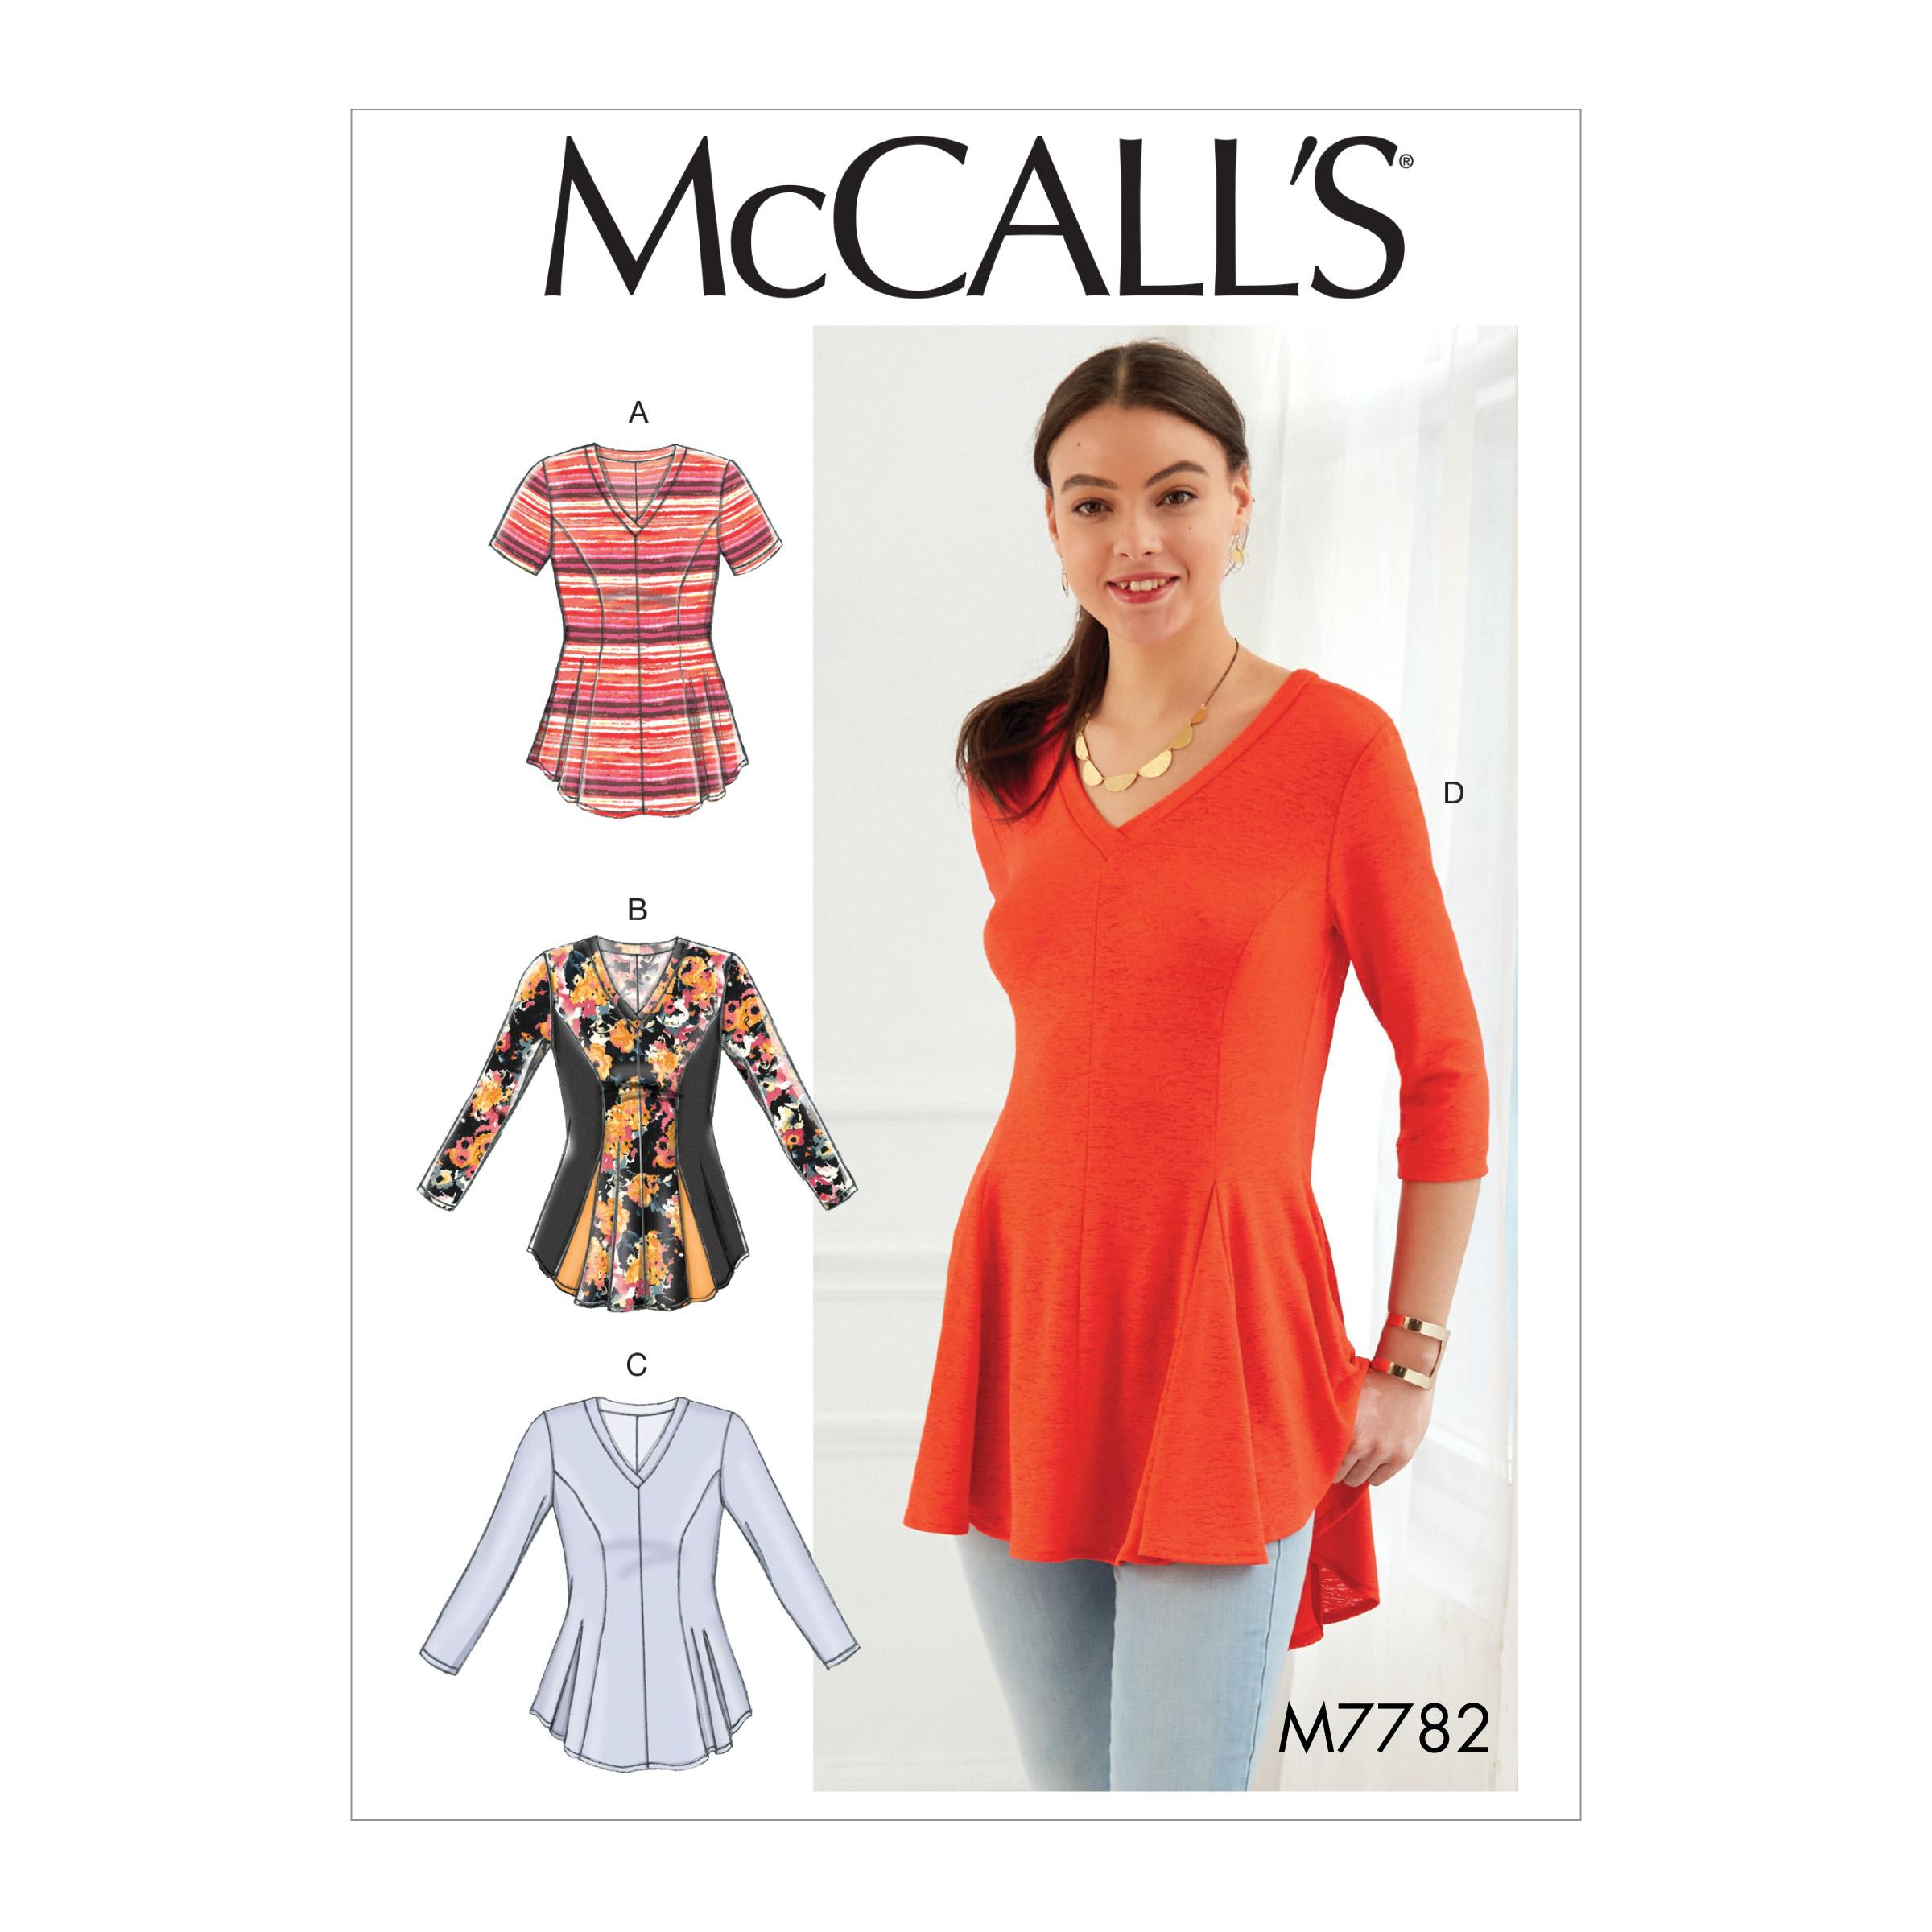 McCalls M7782 Misses Tops, Plus Sizes